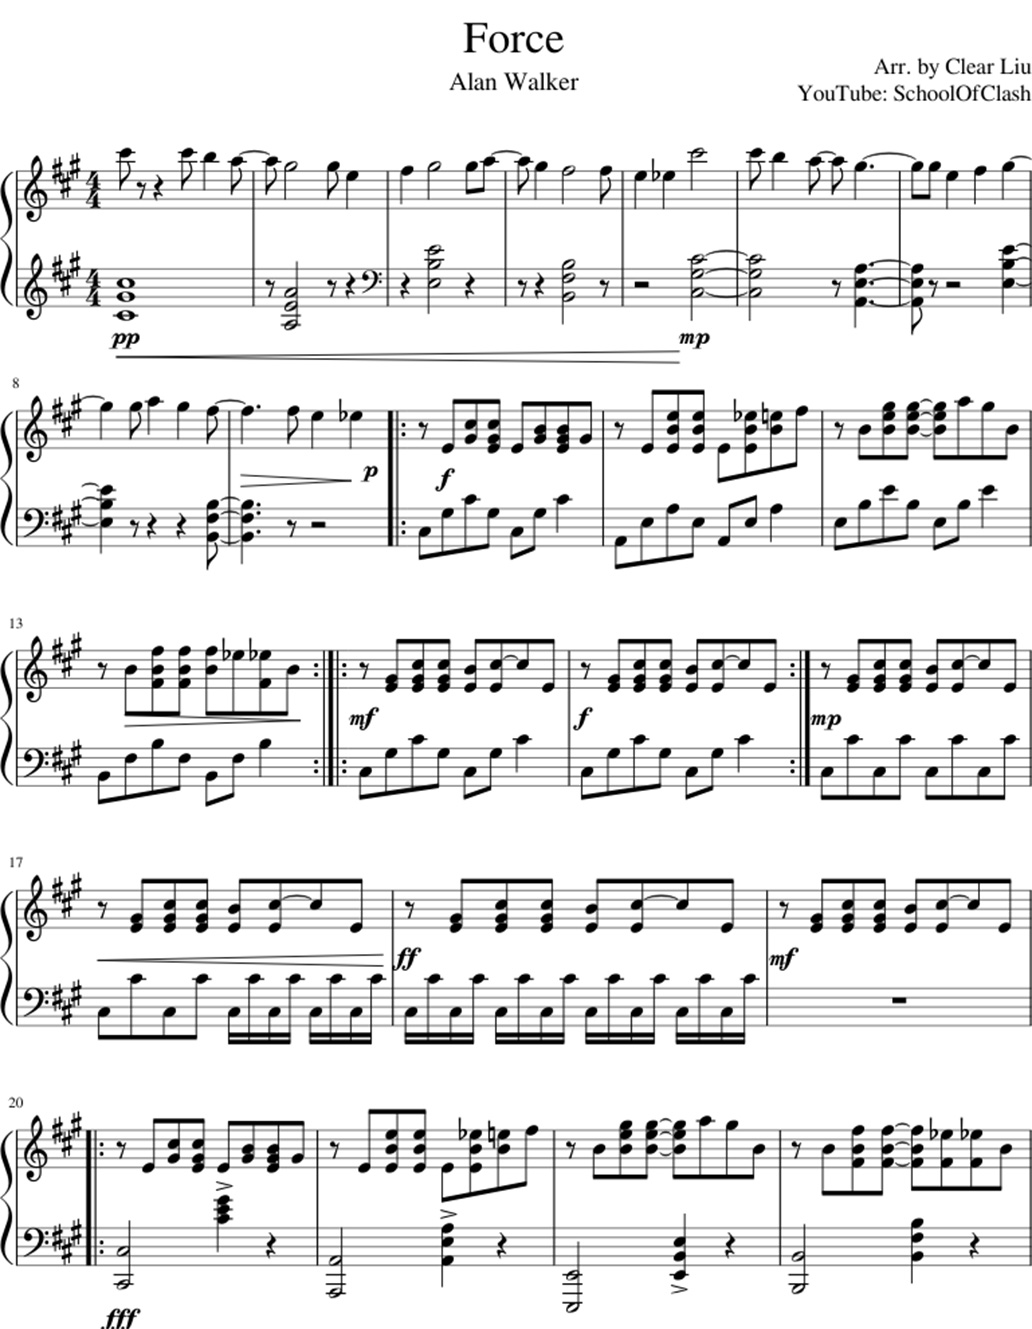 Force sheet music notes 1